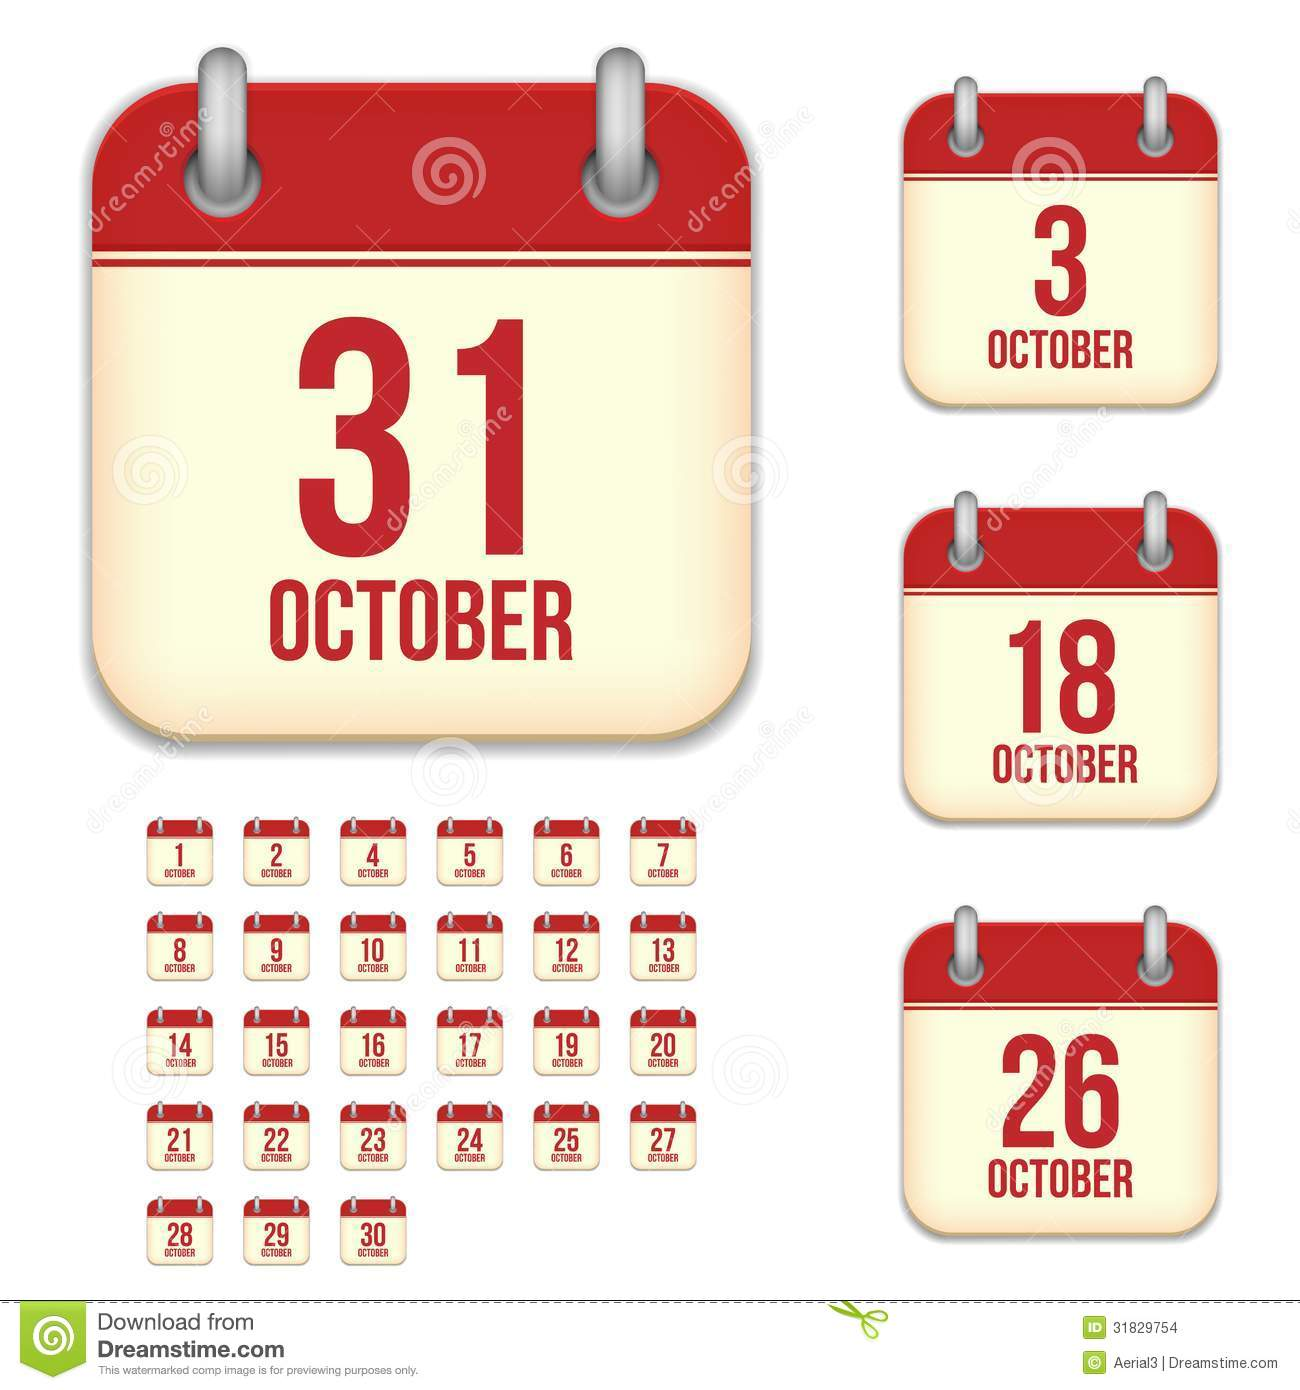 October Vector Calendar Icons Stock Vector - Illustration of icons